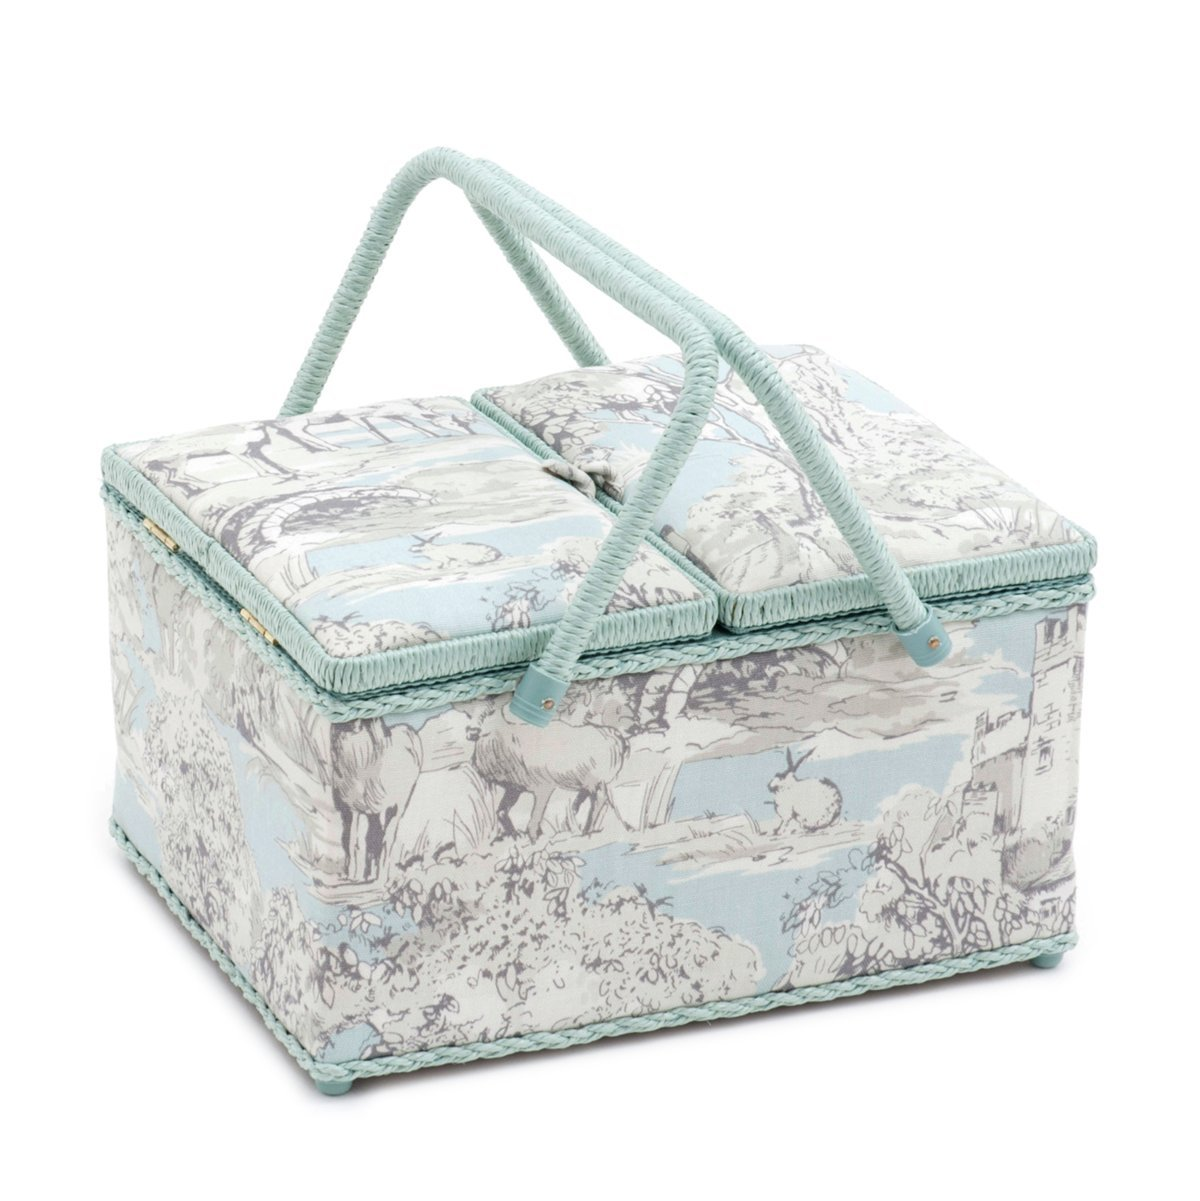 Hobby Gift 'Manor Toile' Twin Lid Rectangle Sewing Box 24 x 31.5 x 19.5cm (d/w/h) 4337015815